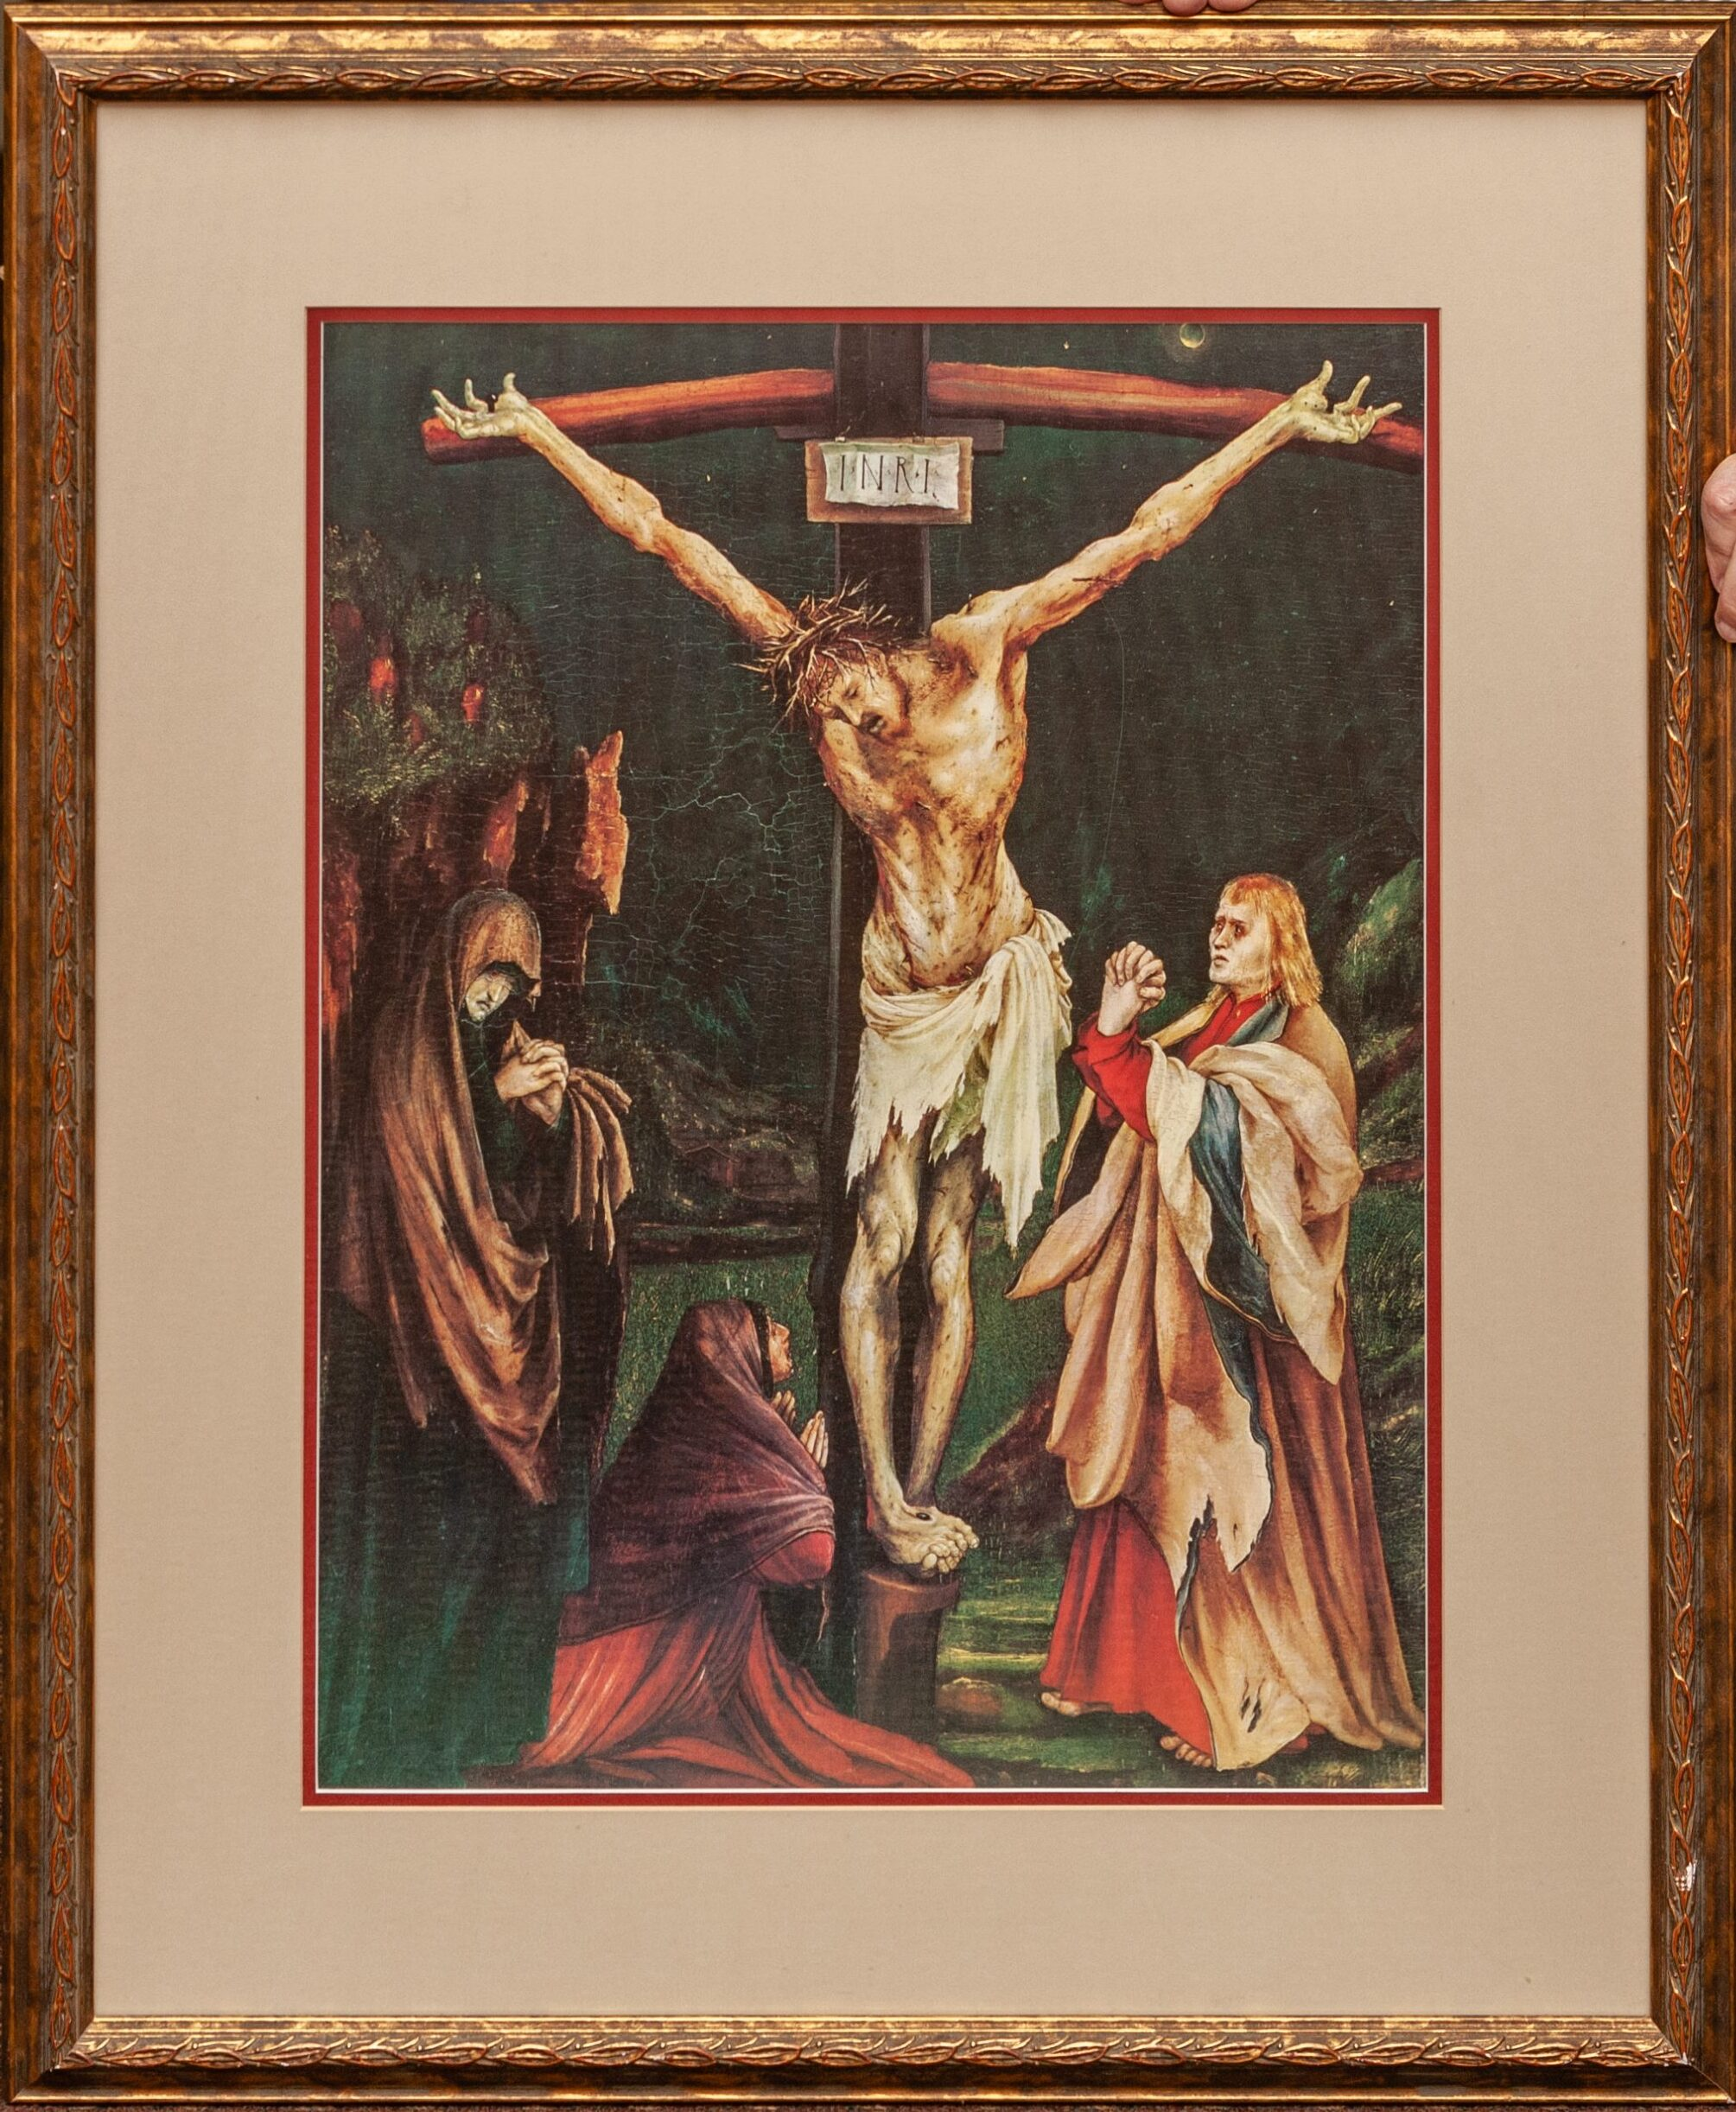 the Small Crucifixion by Mathis Grunewald 24x32